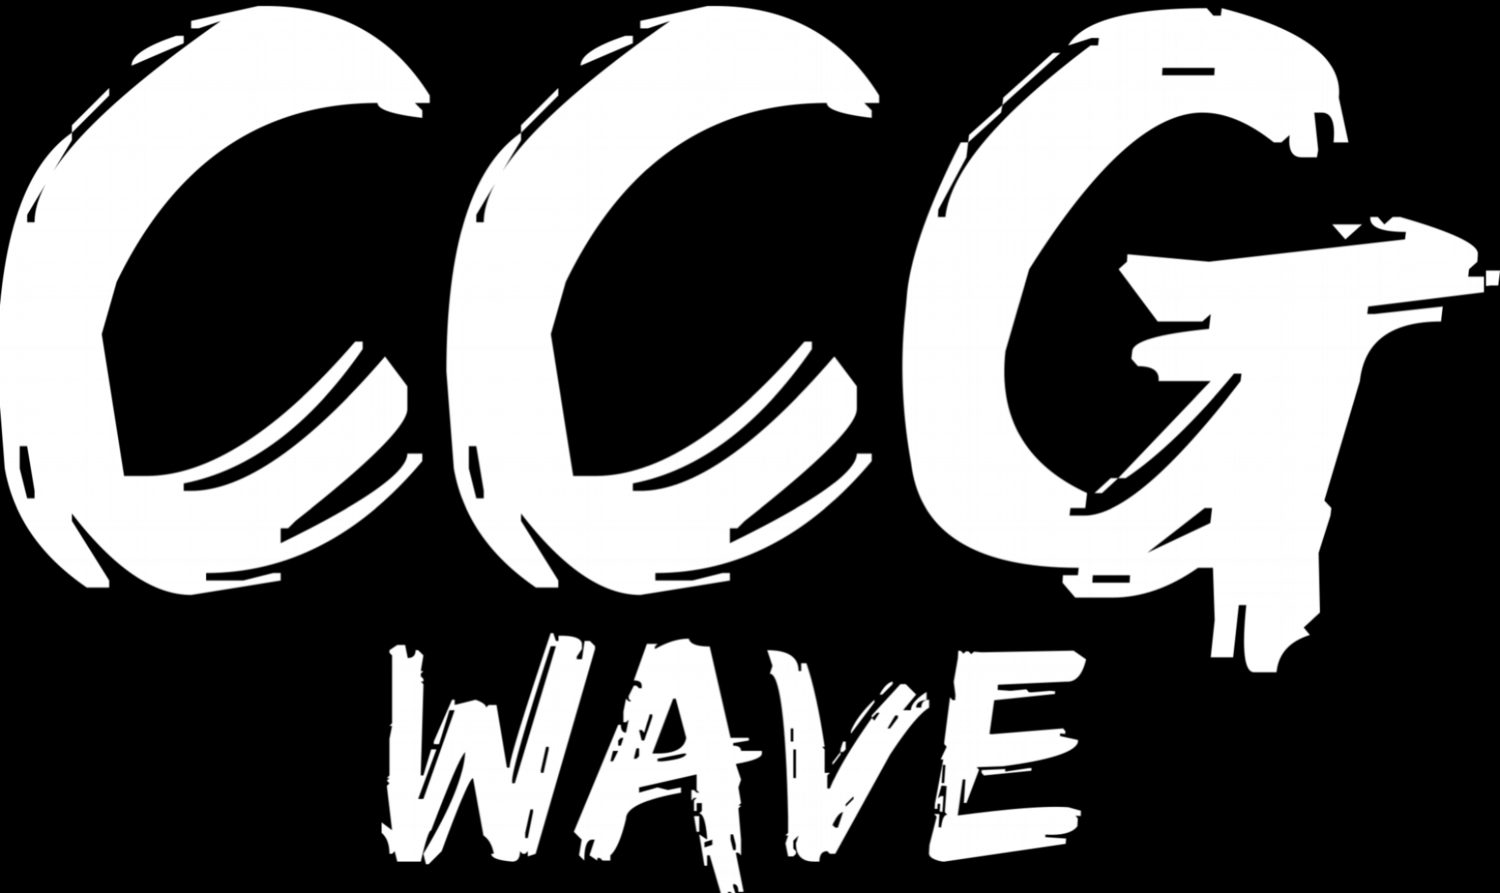 CCGWAVE